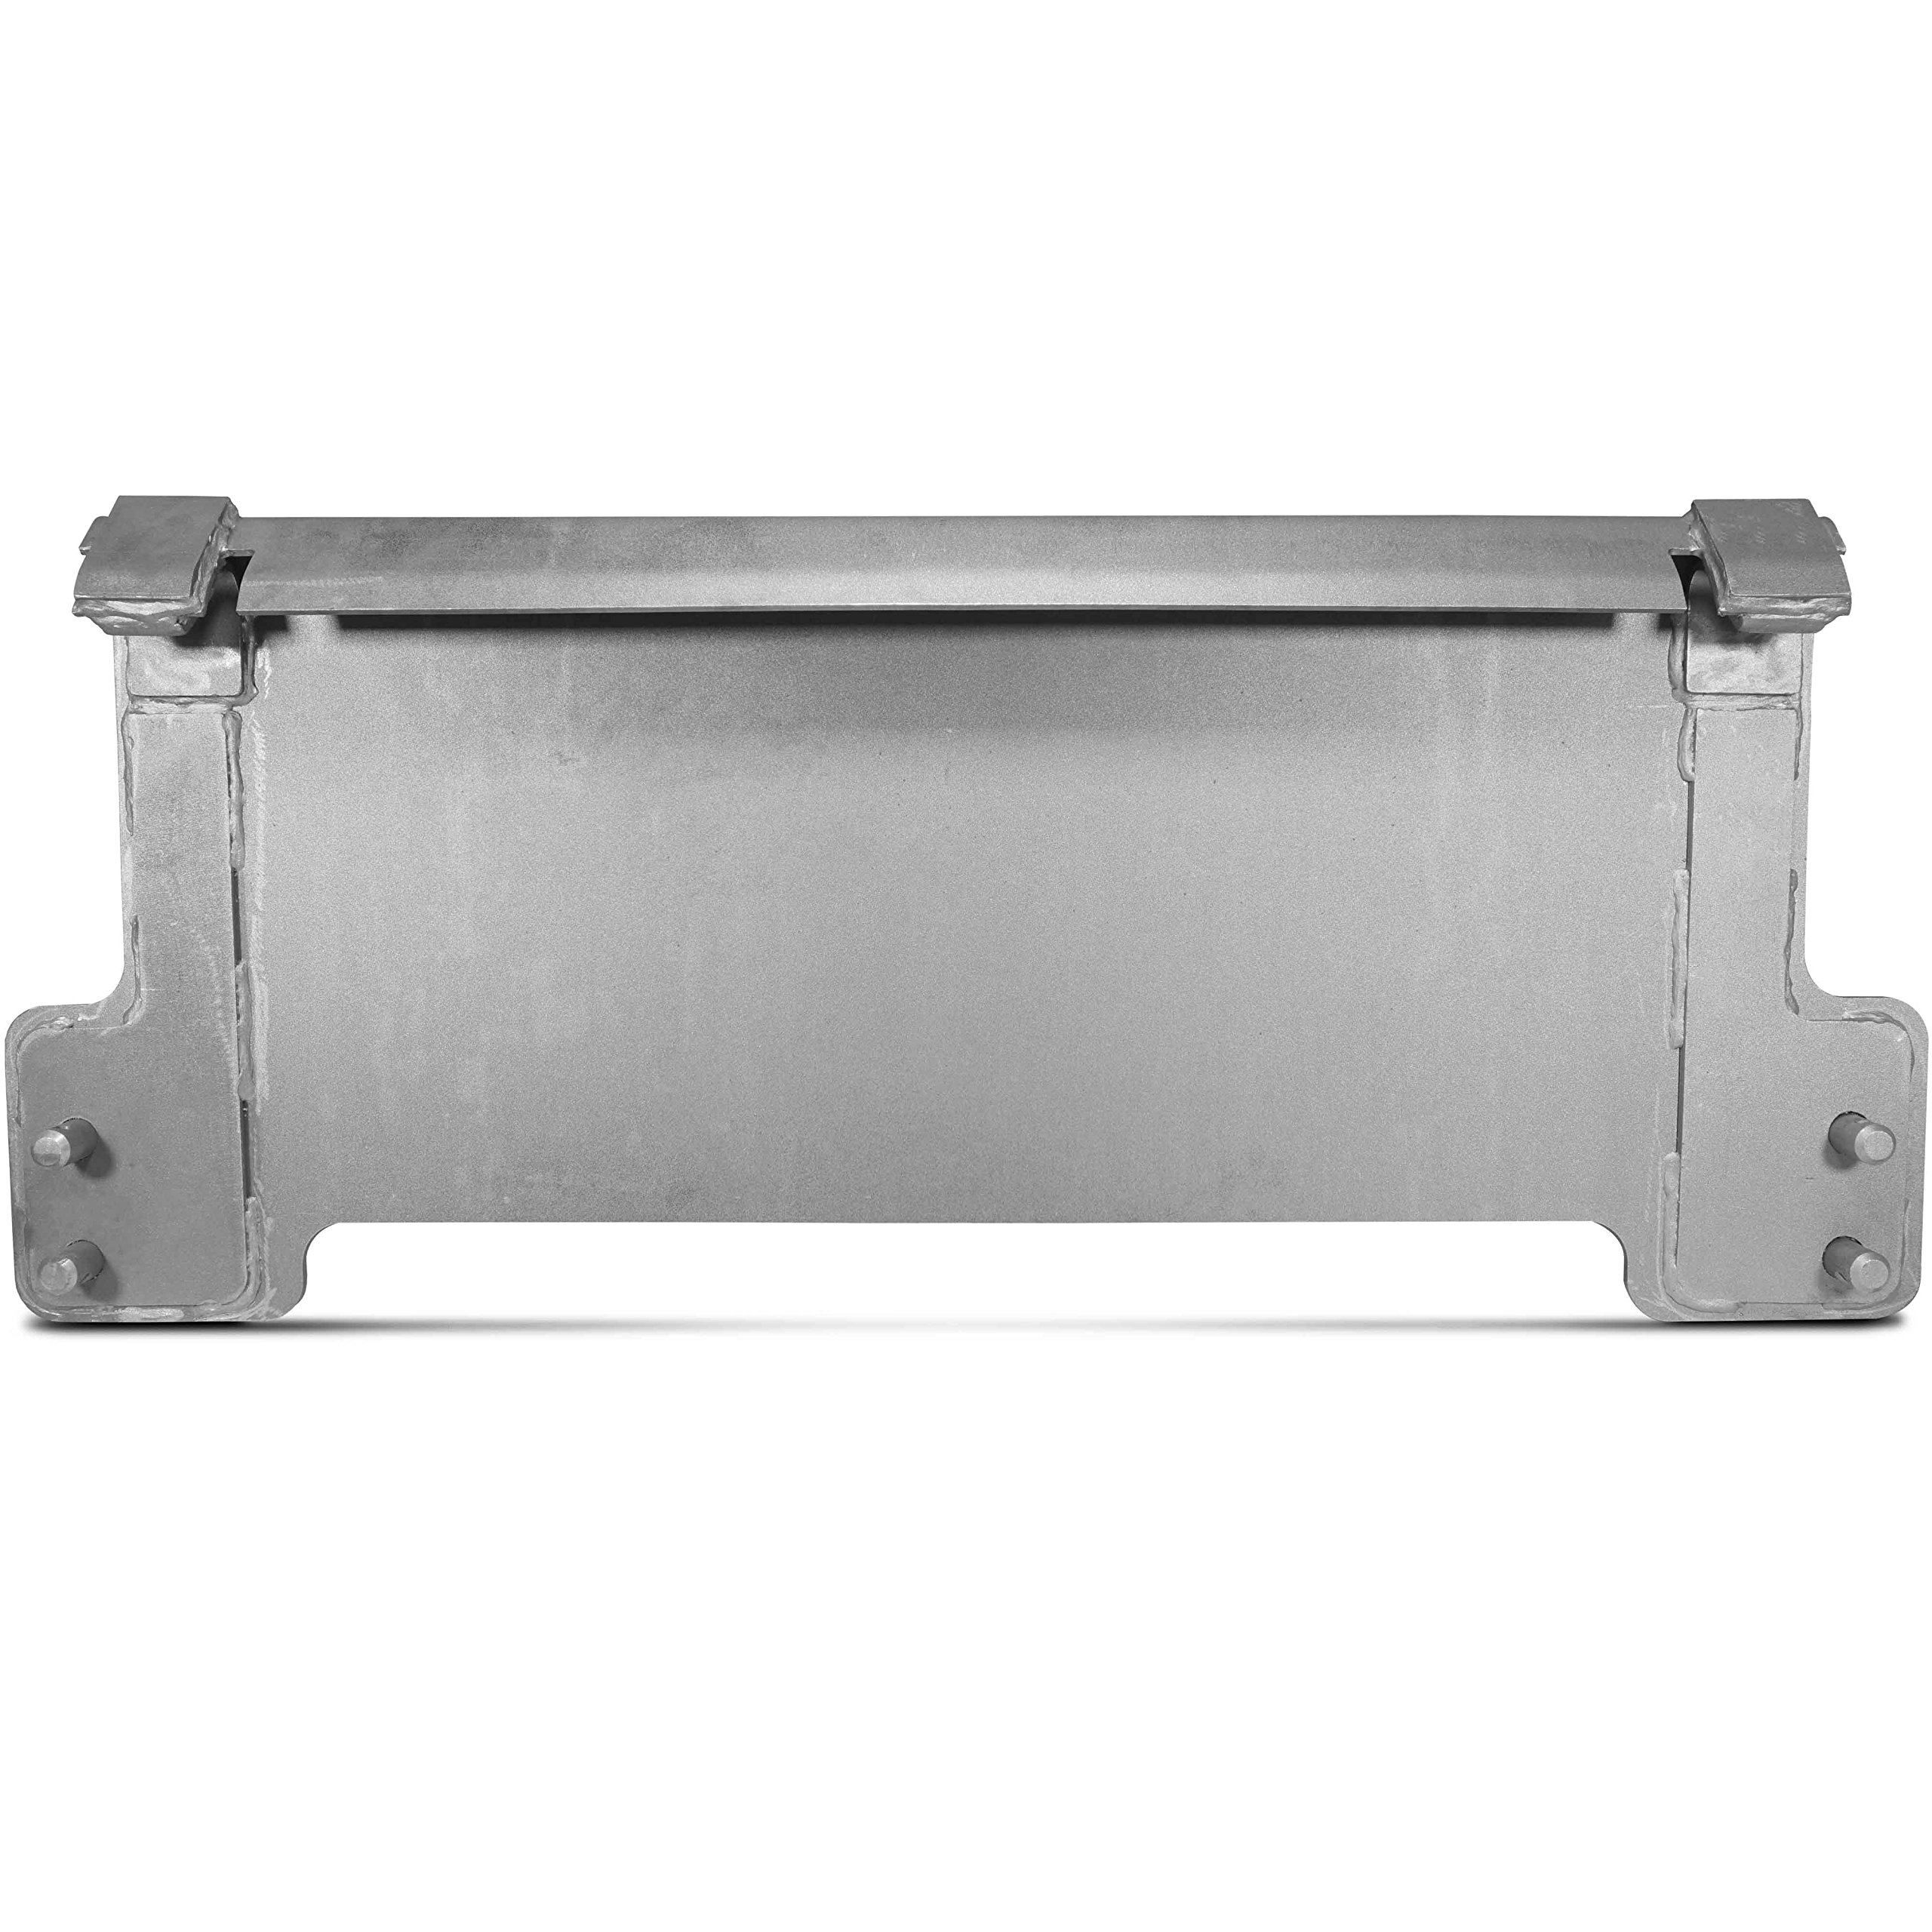 Titan Quick Tach Mount Plate fits John Deere Front Loader Tractor Loader Weld by Titan Attachments